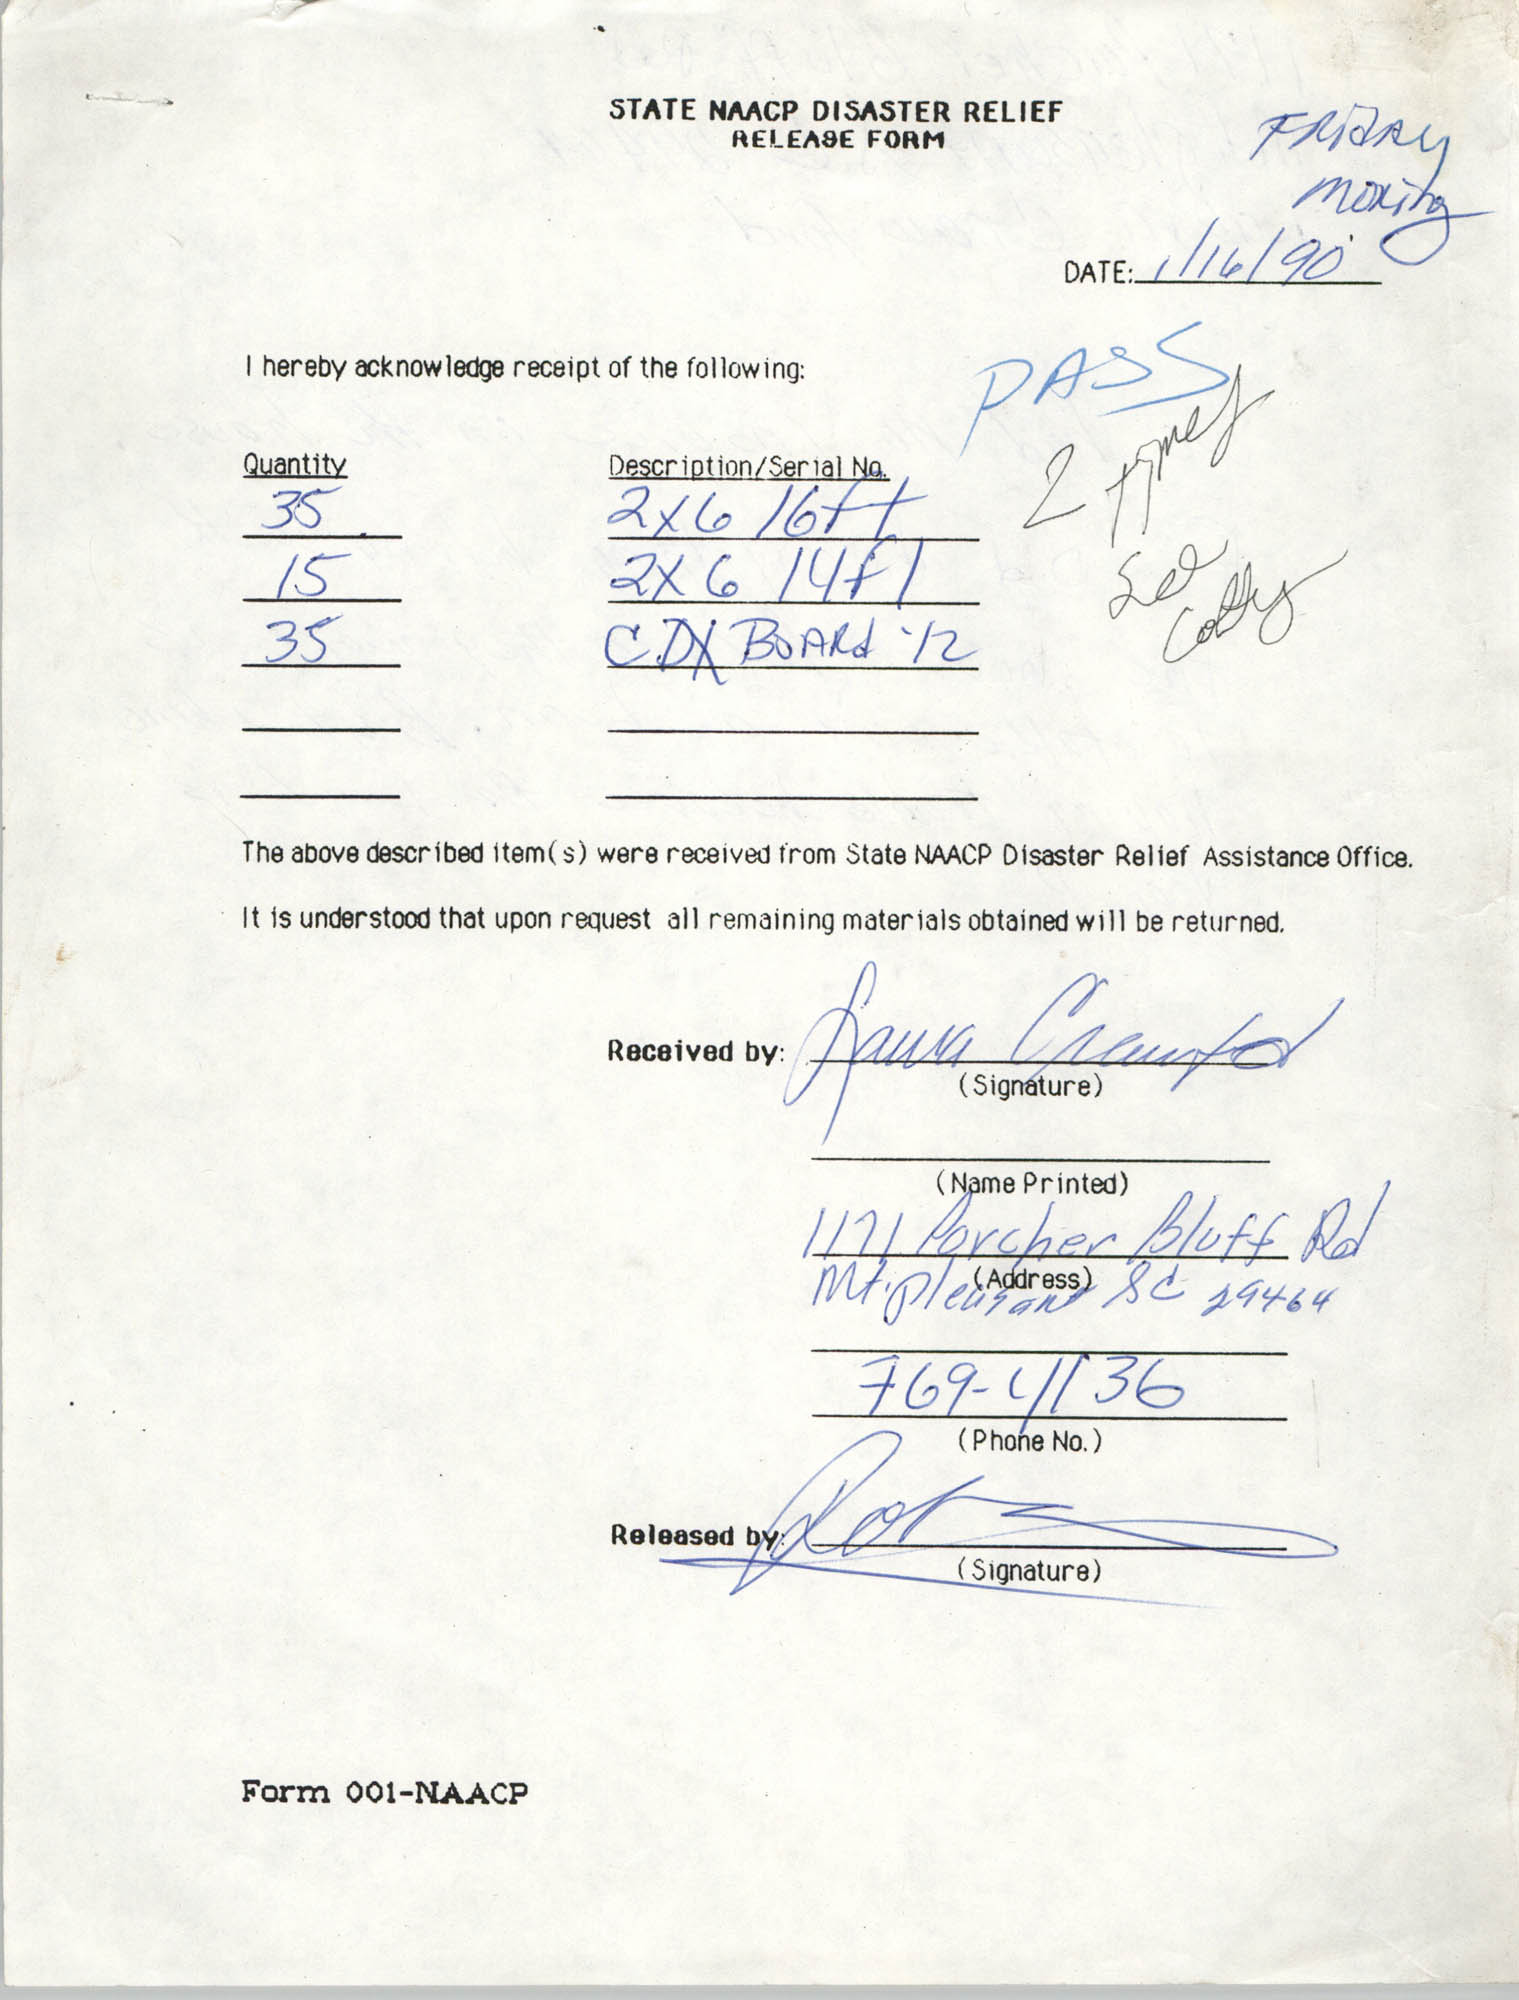 State NAACP Disaster Relief, Hurricane Huge Release Form, 1989, Page 7